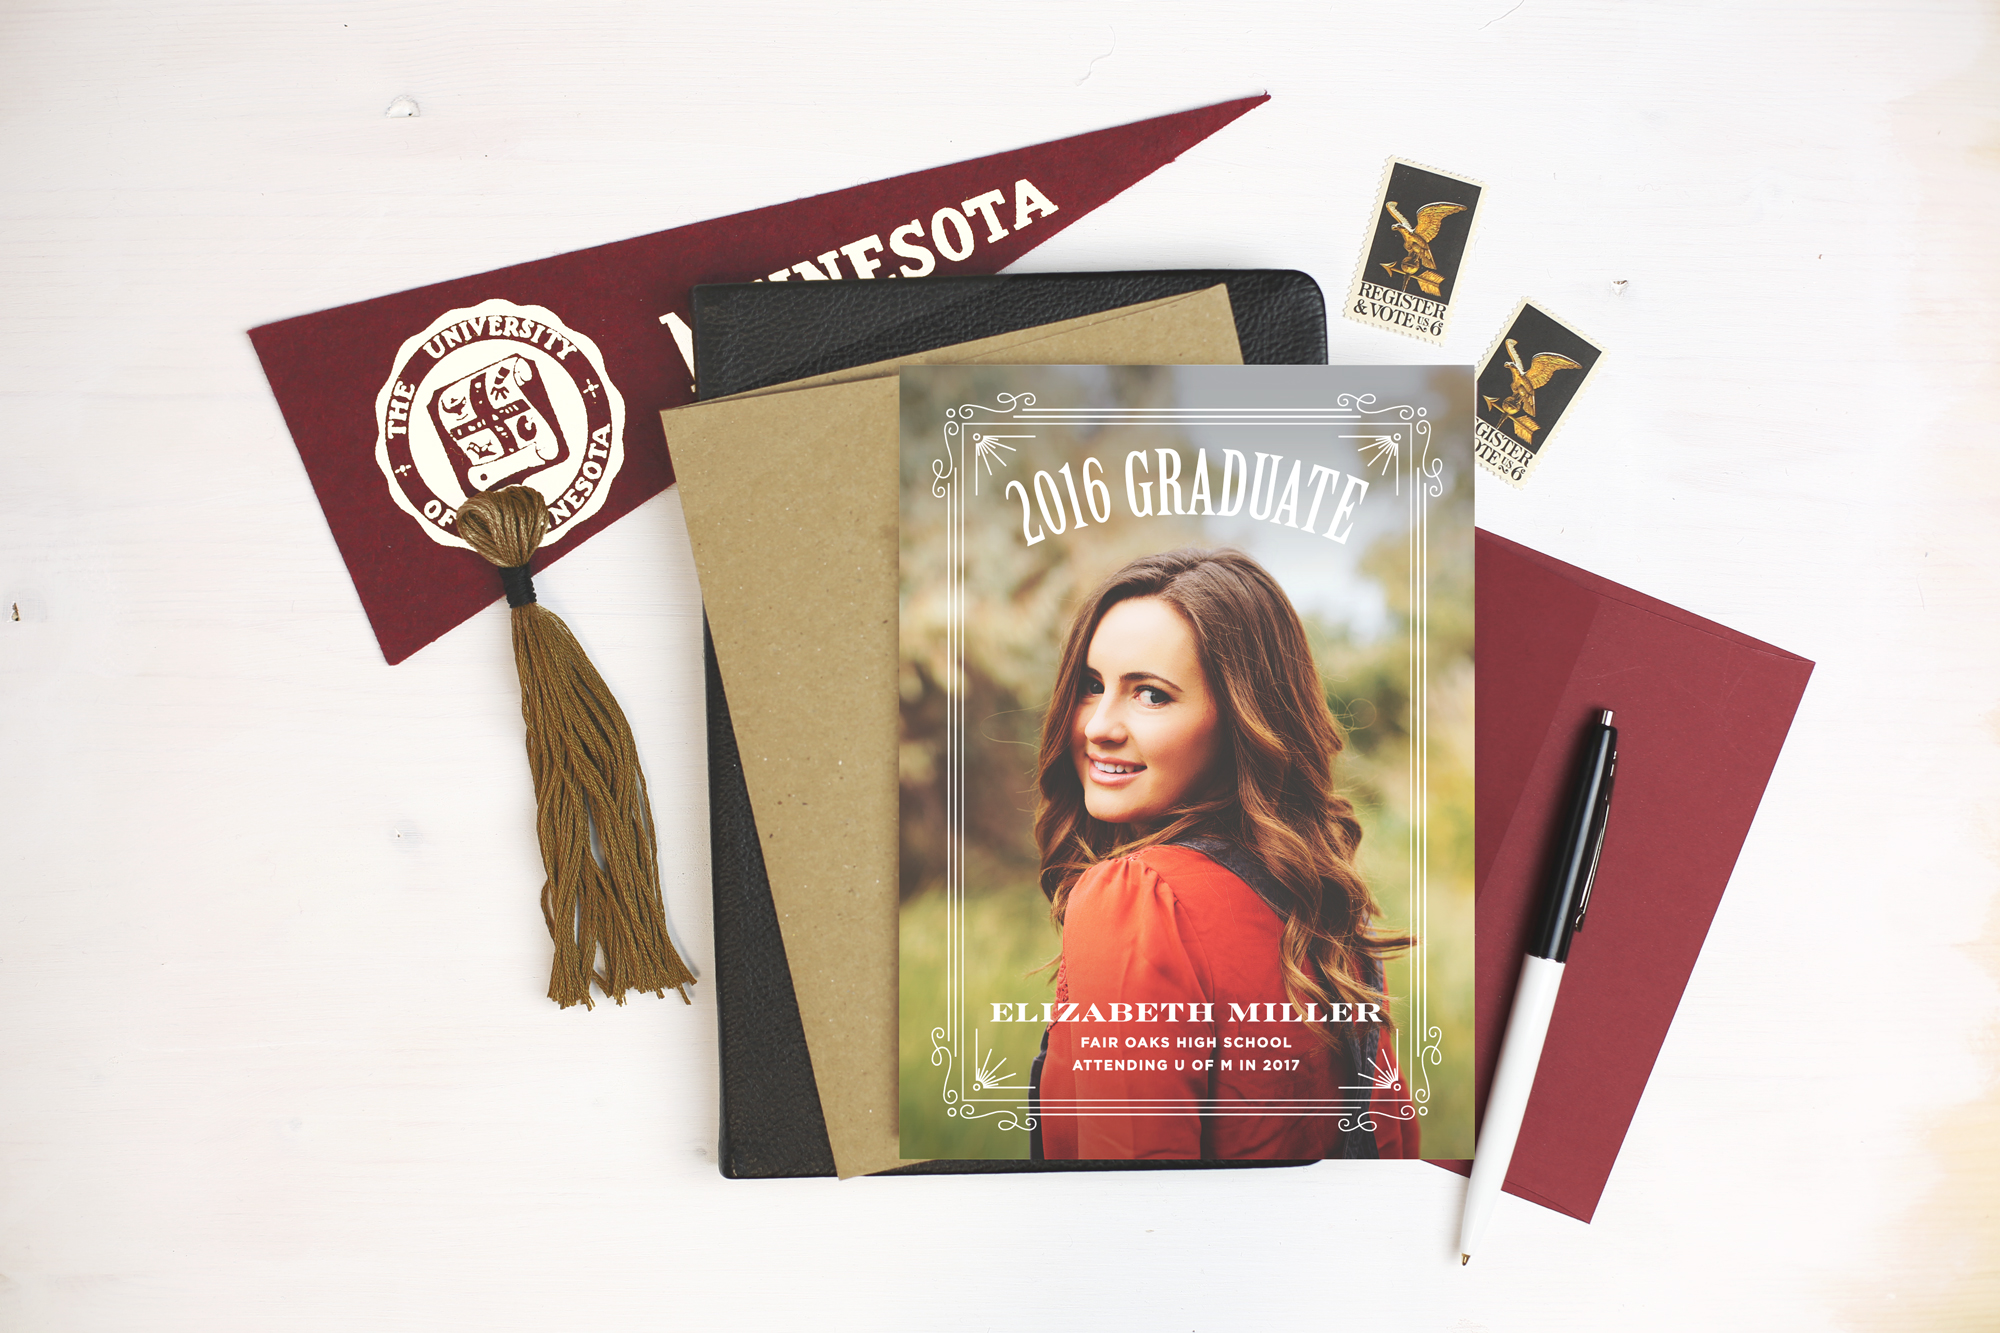 Basic Invite Graduation Invites